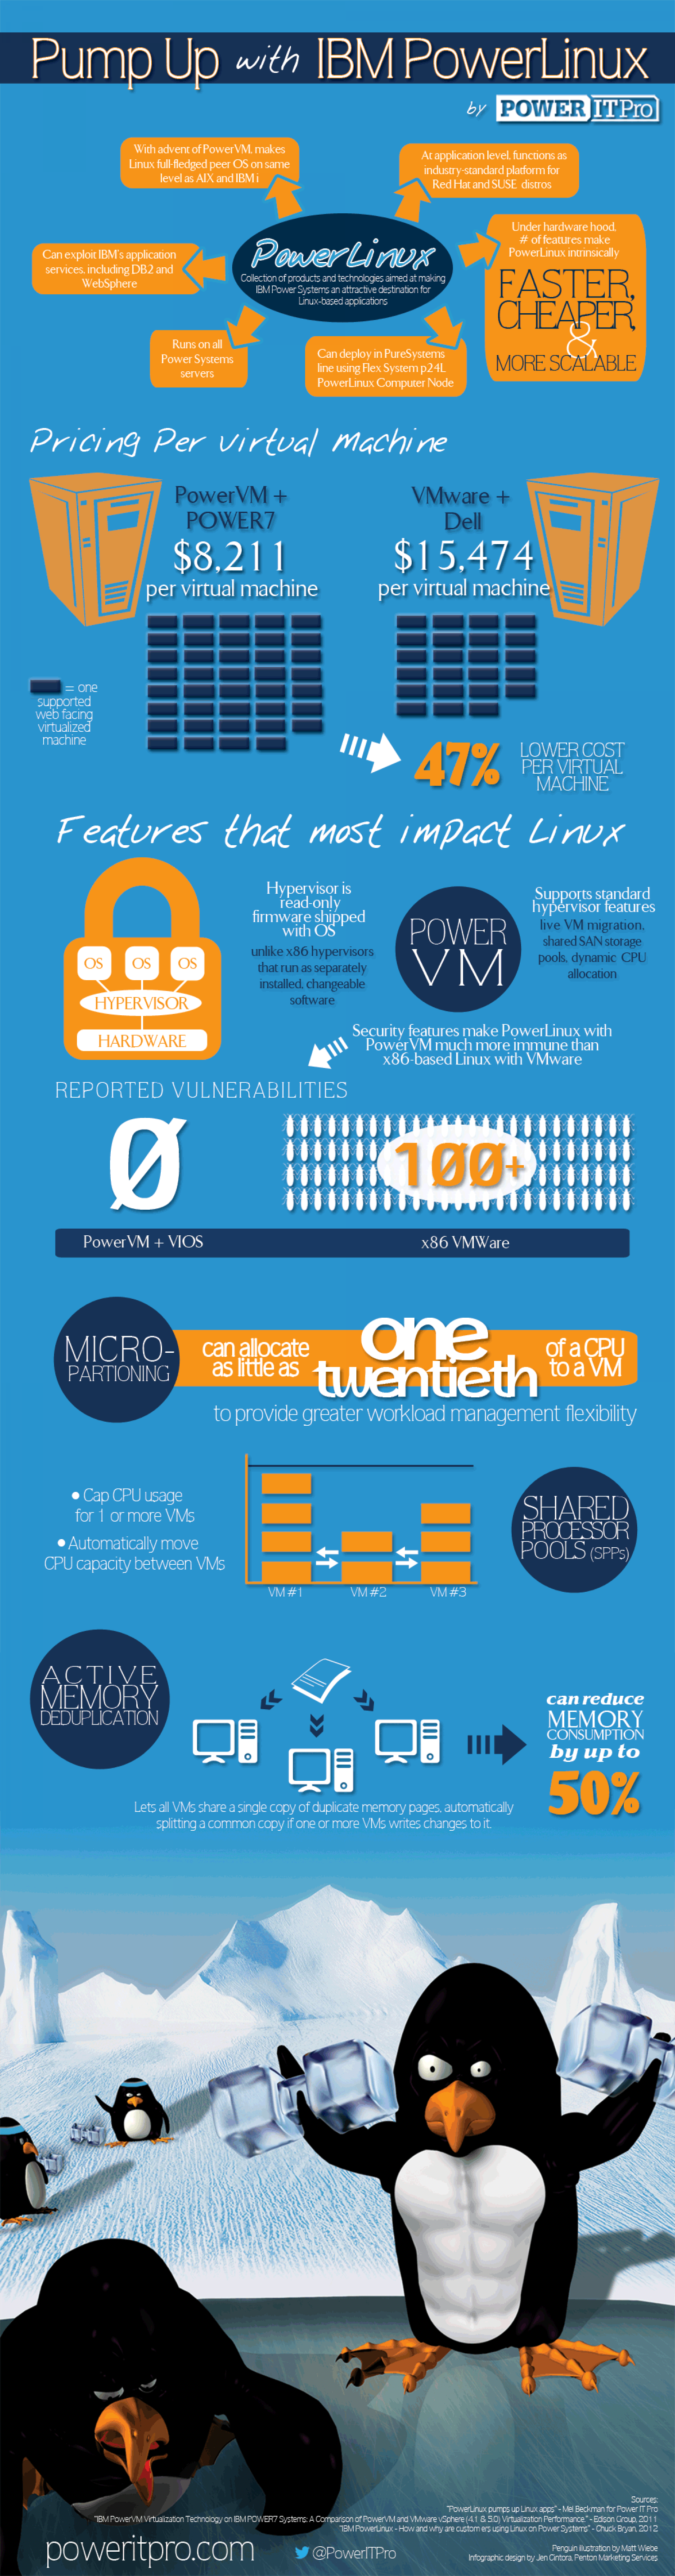 Pump Up with IBM PowerLinux Infographic